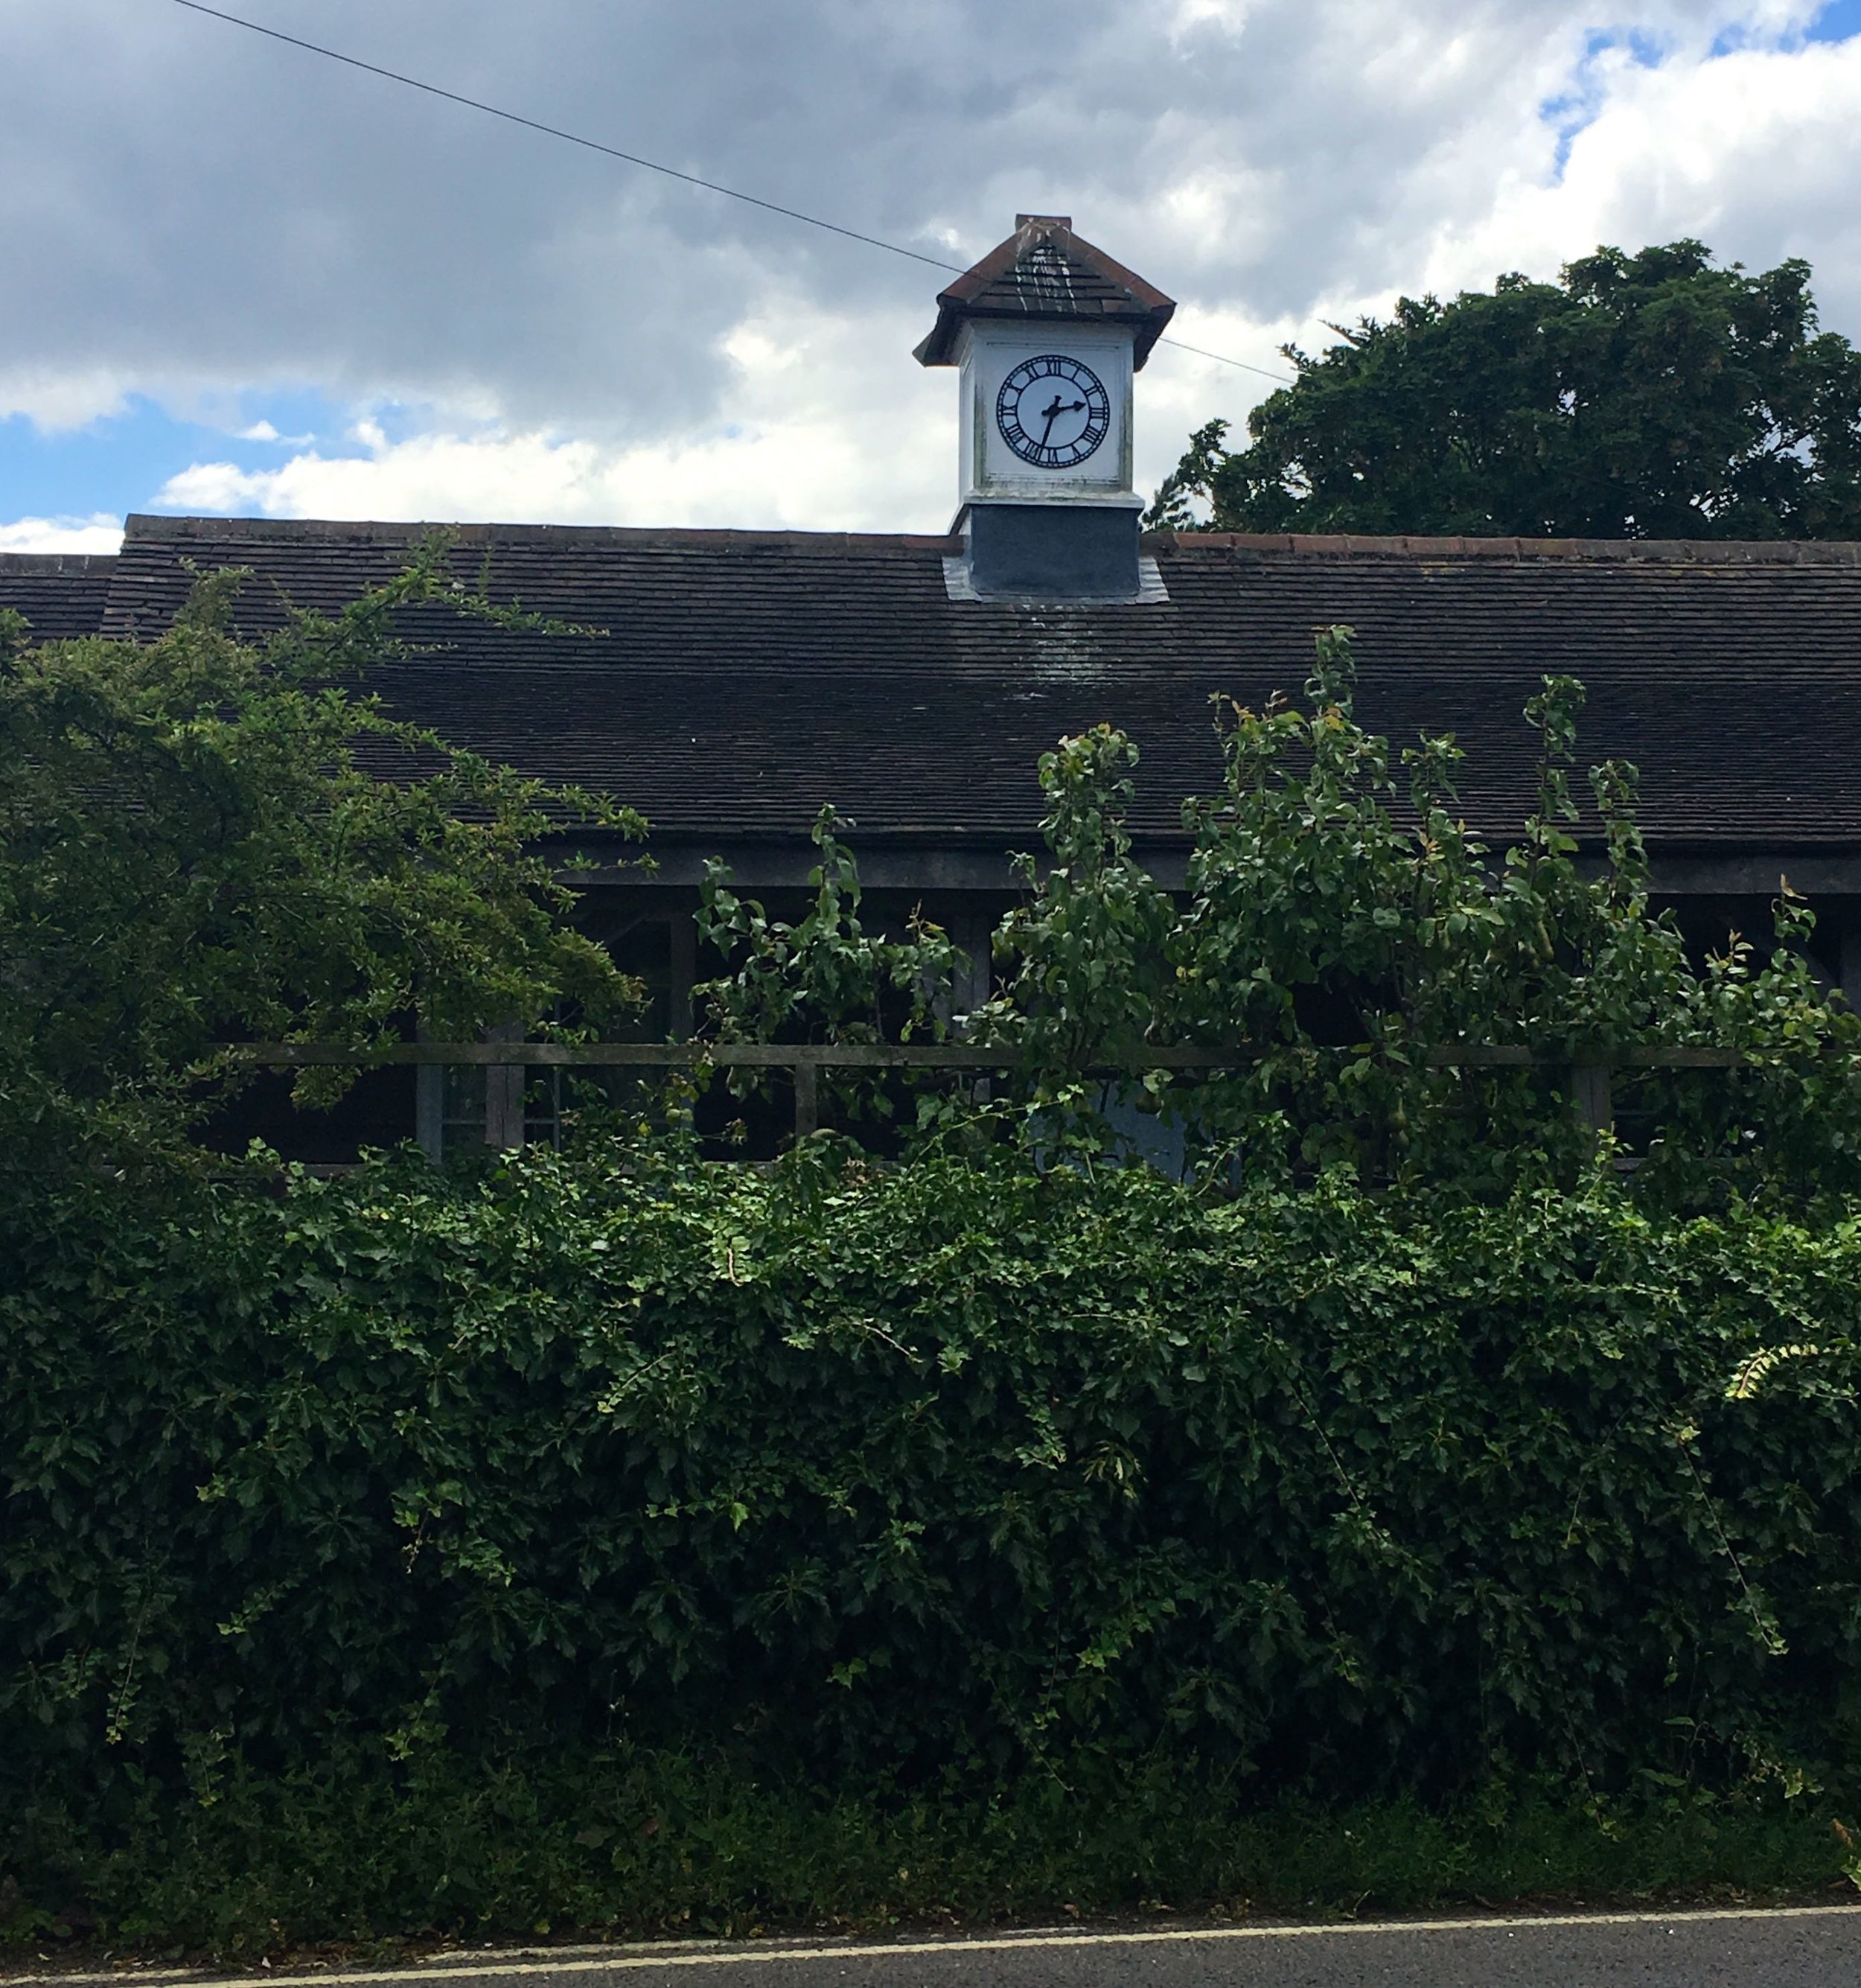 quirky architecture in Orford with a clocktower popping over the hedge